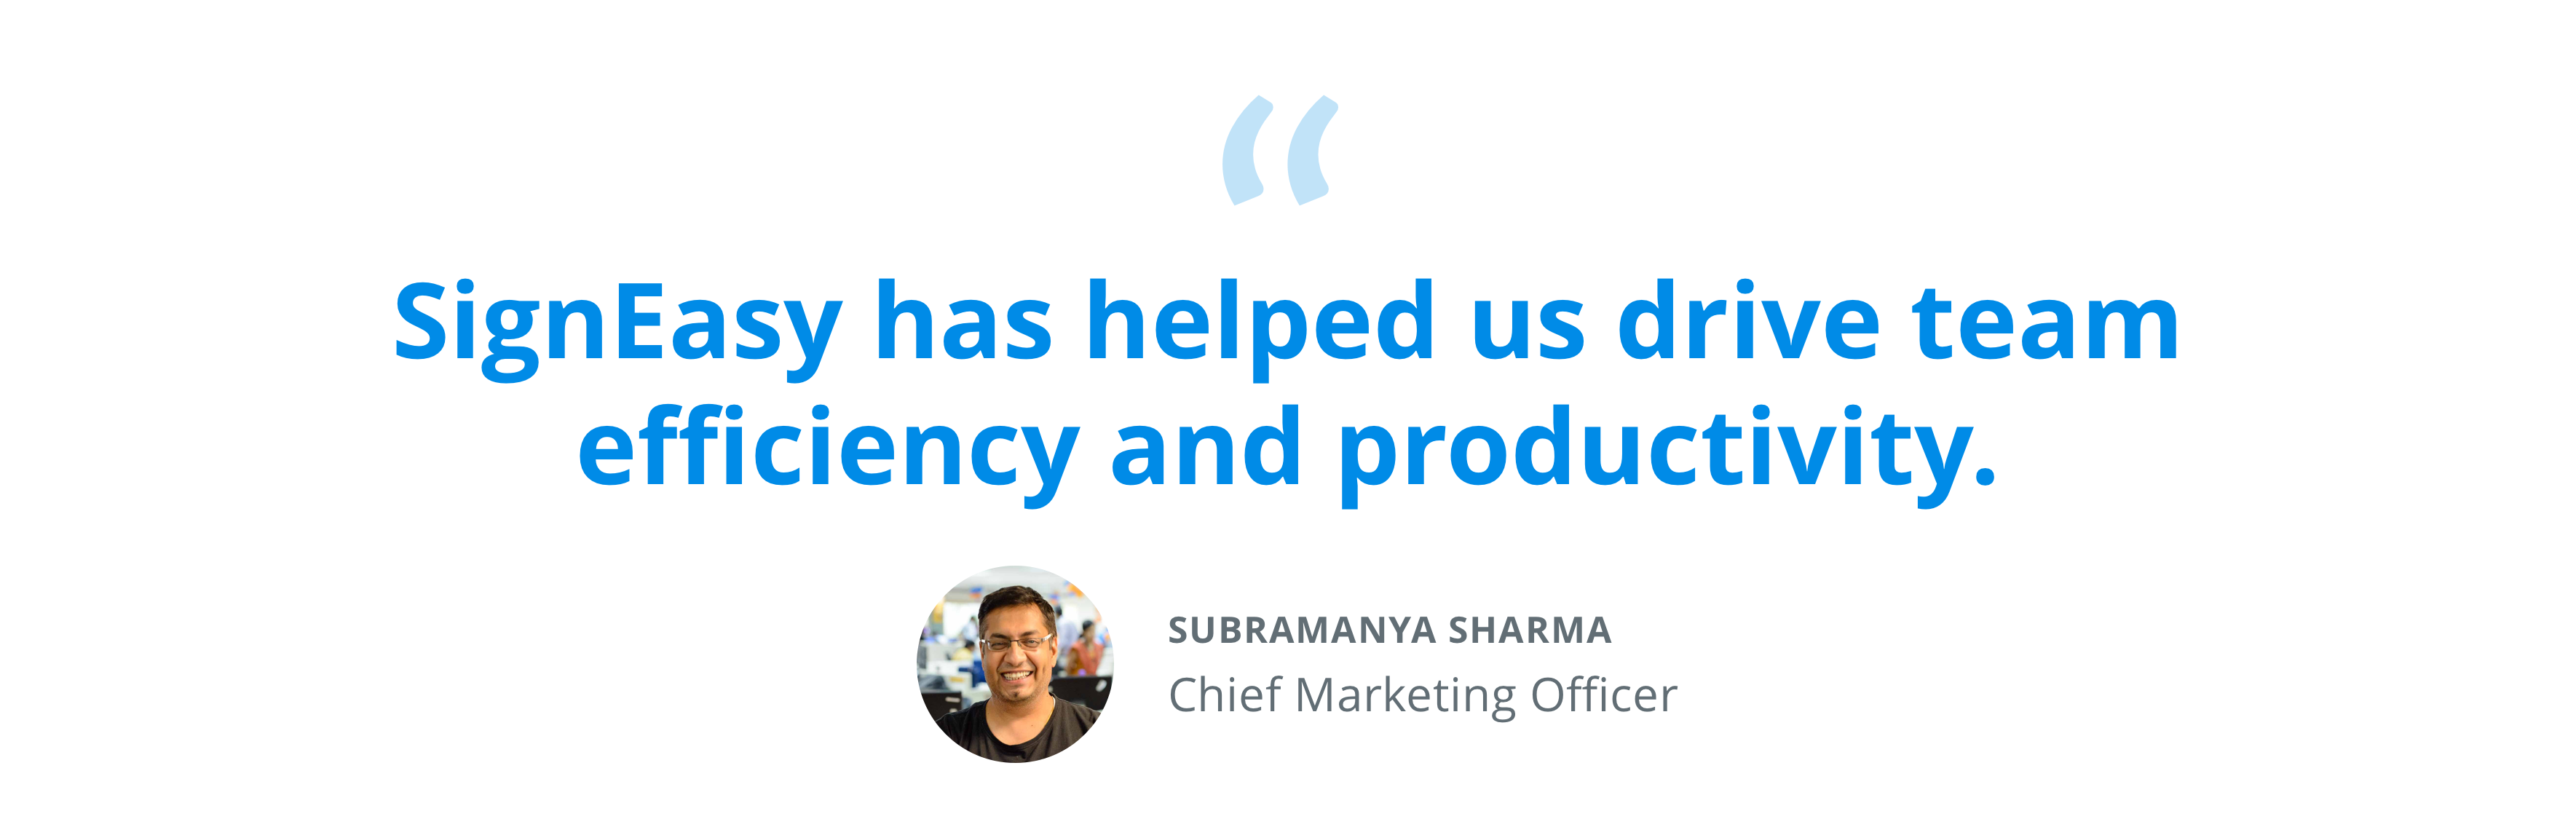 SignEasy-has-helped-us-drive-team-efficiency-and-productivity